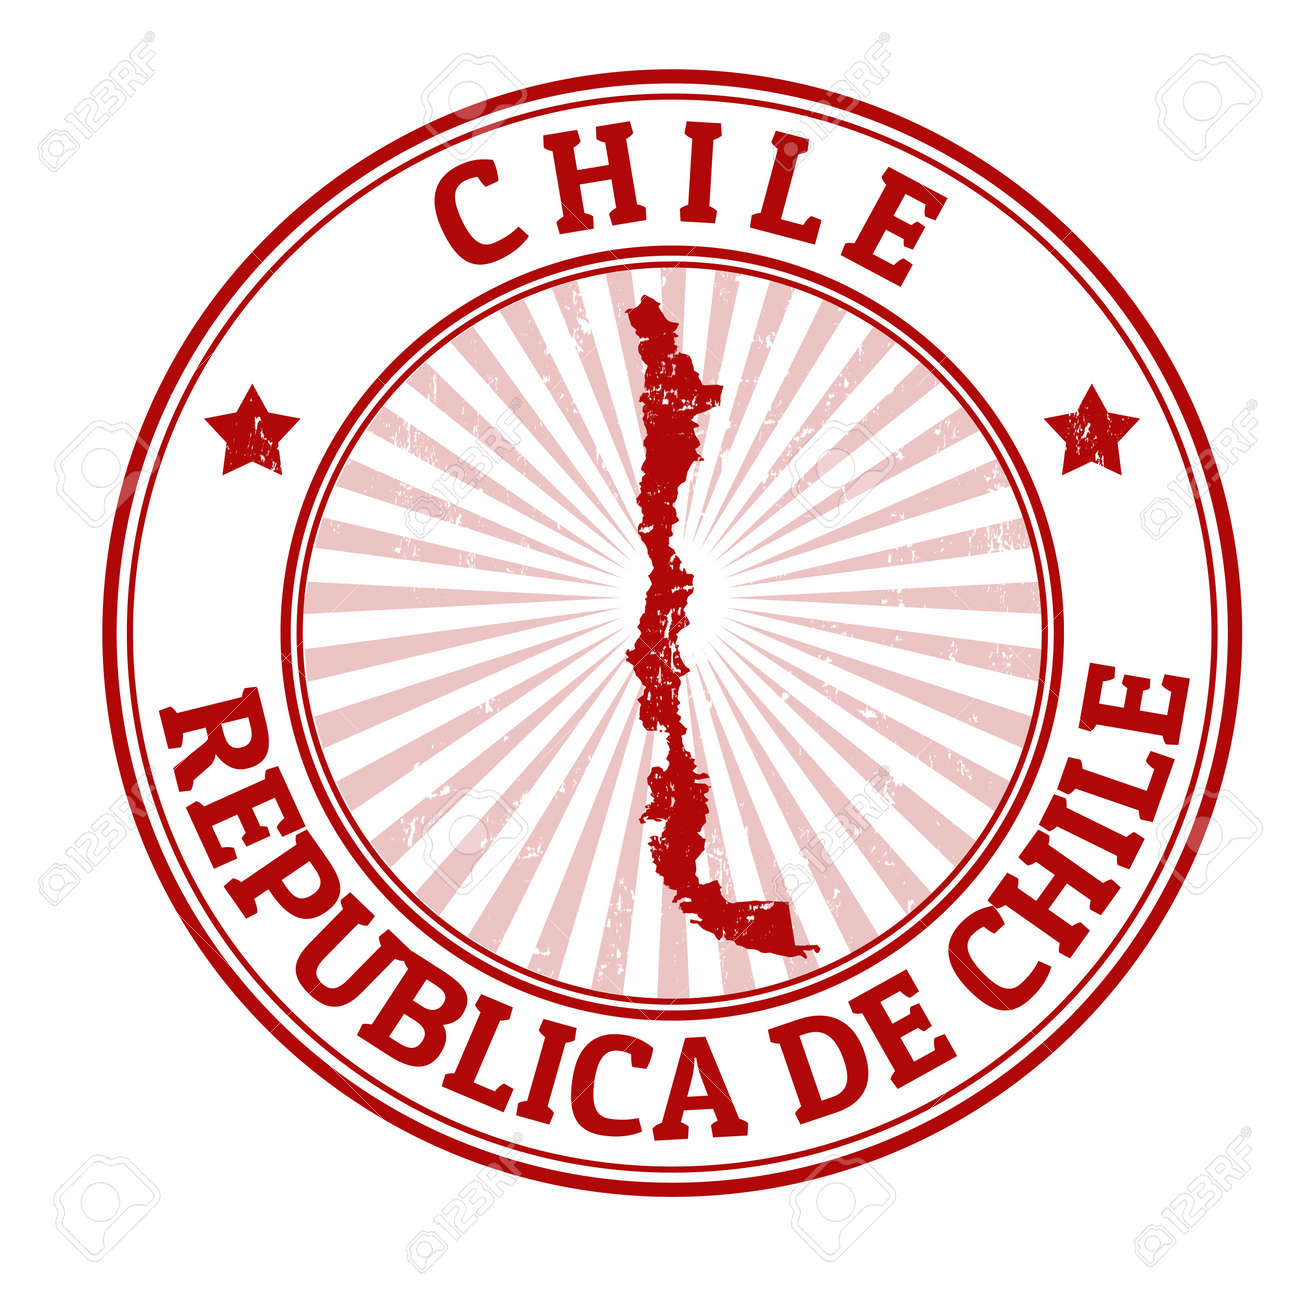 Grunge Rubber Stamp With The Name And Map Of Chile Vector Illustration Stock